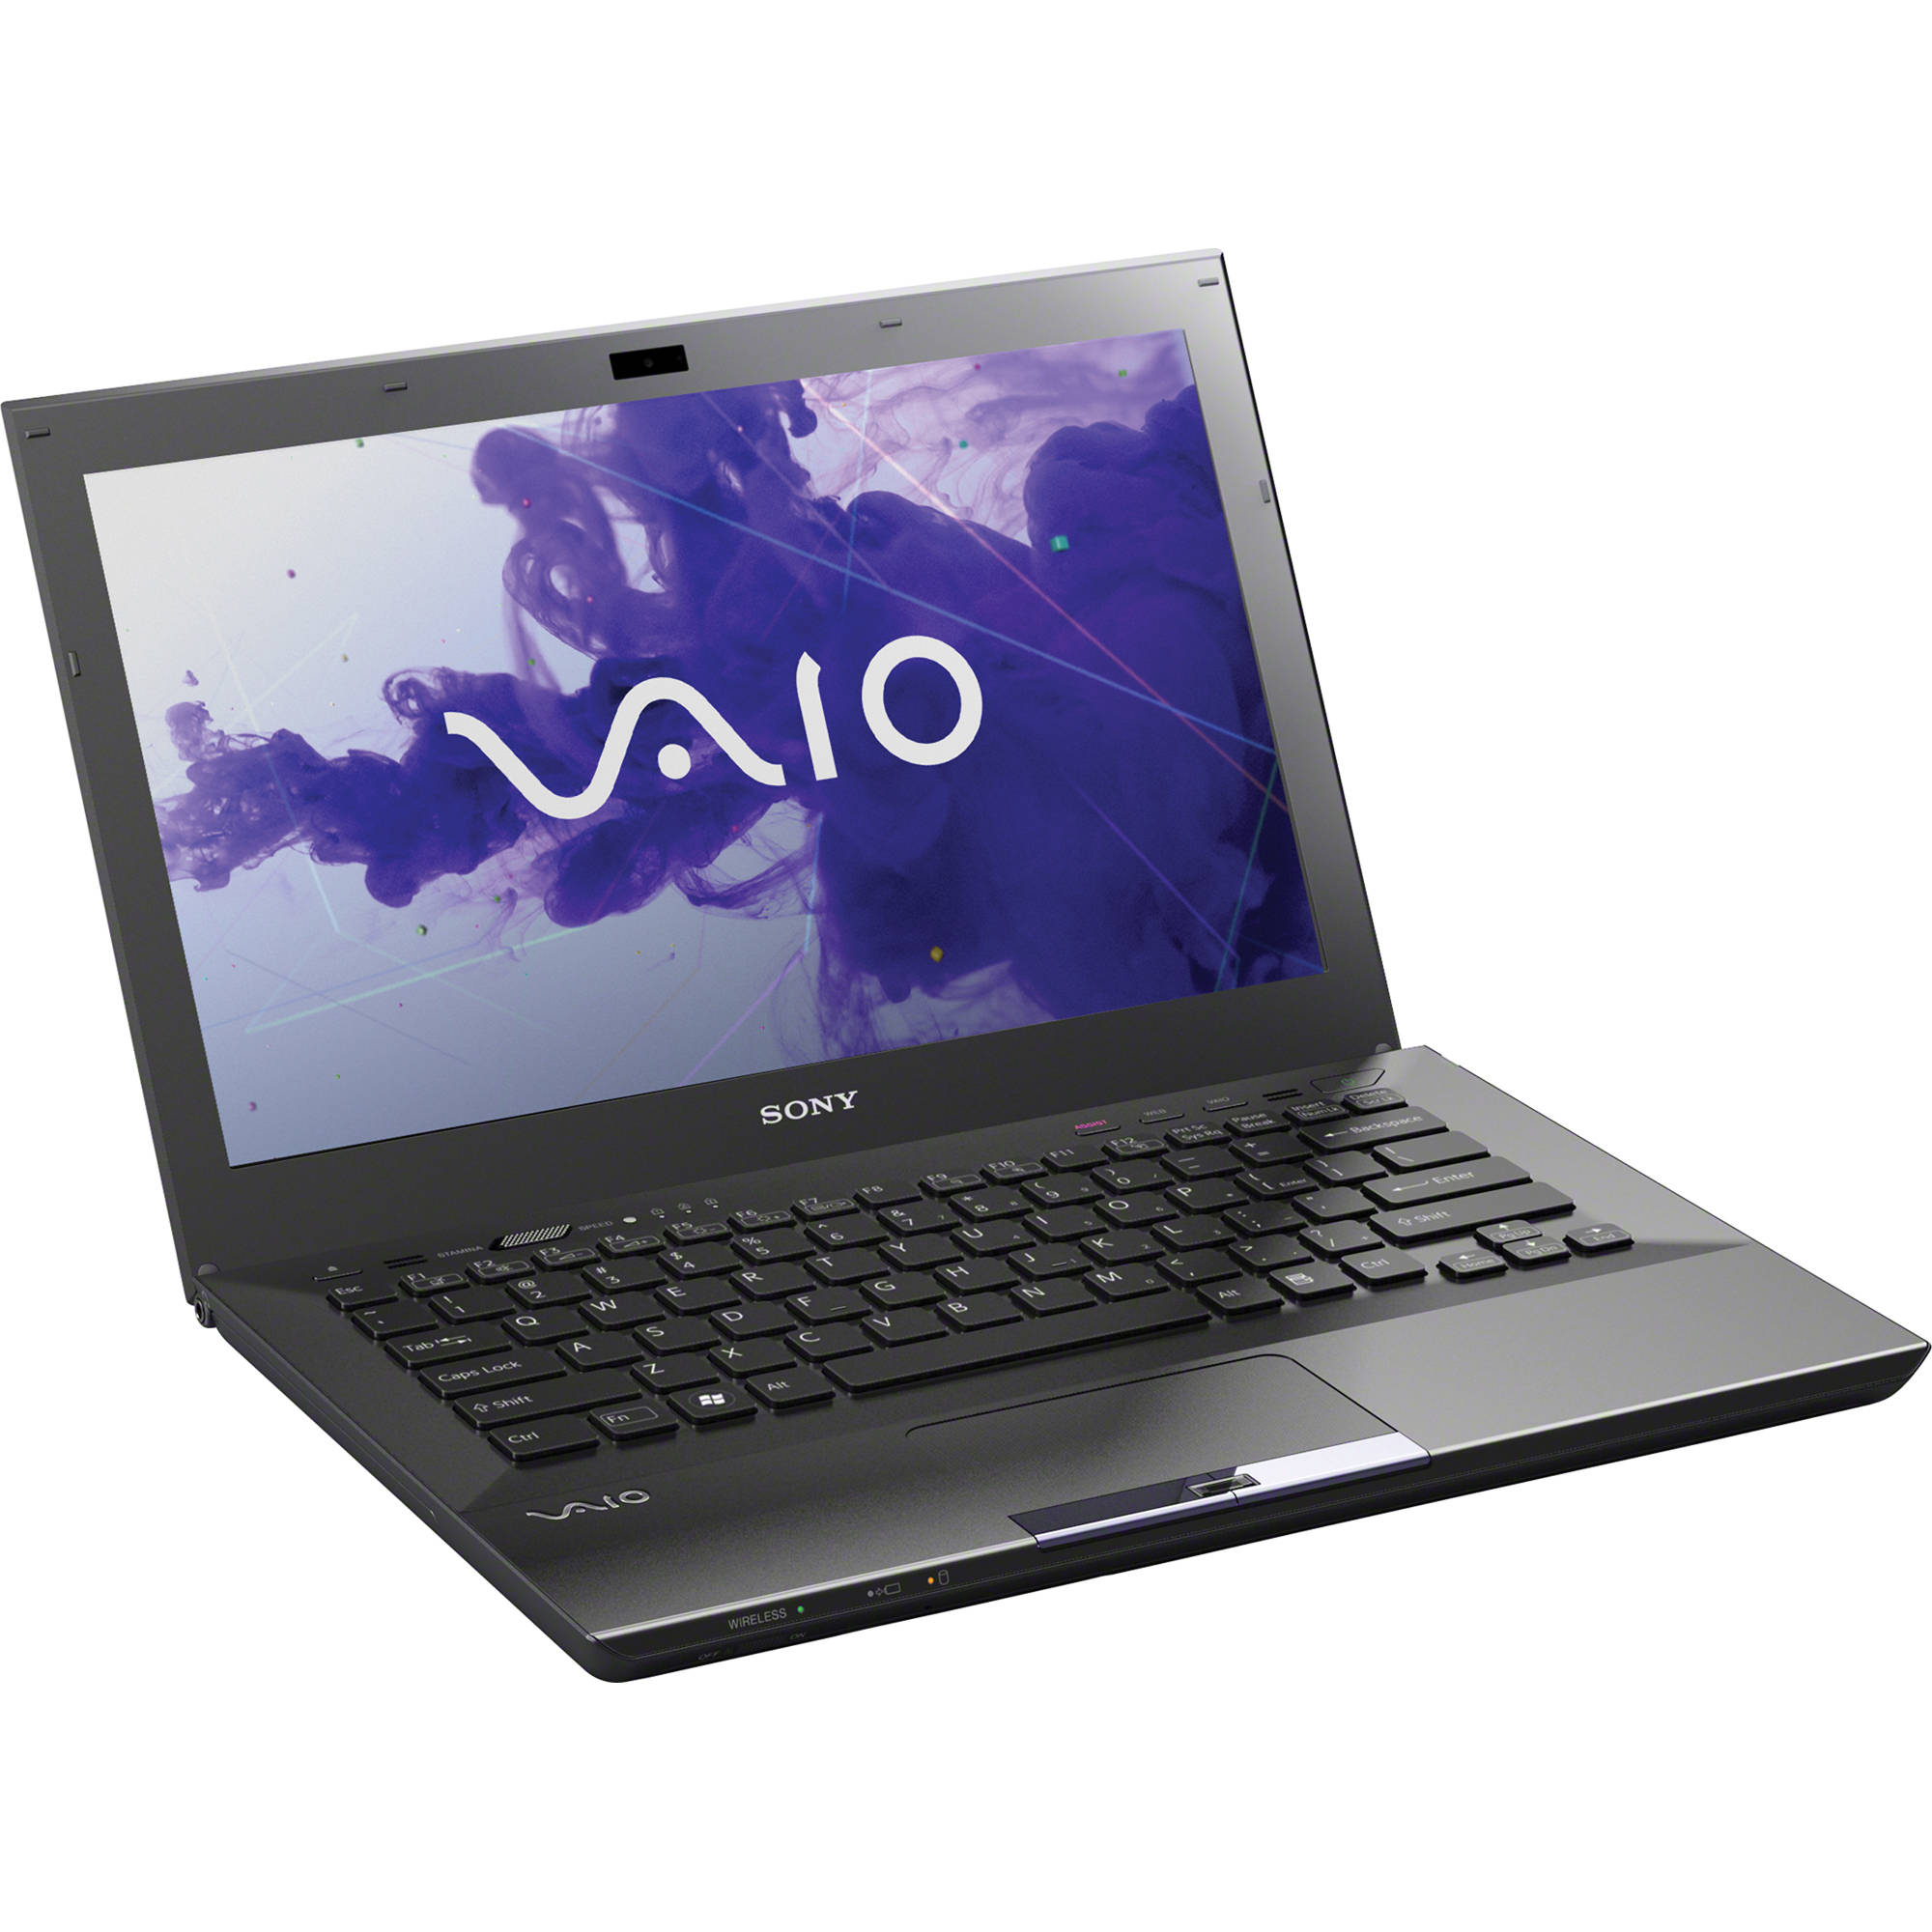 Sony Vaio VPCSA41FX/BI Intel WiDi X64 Driver Download